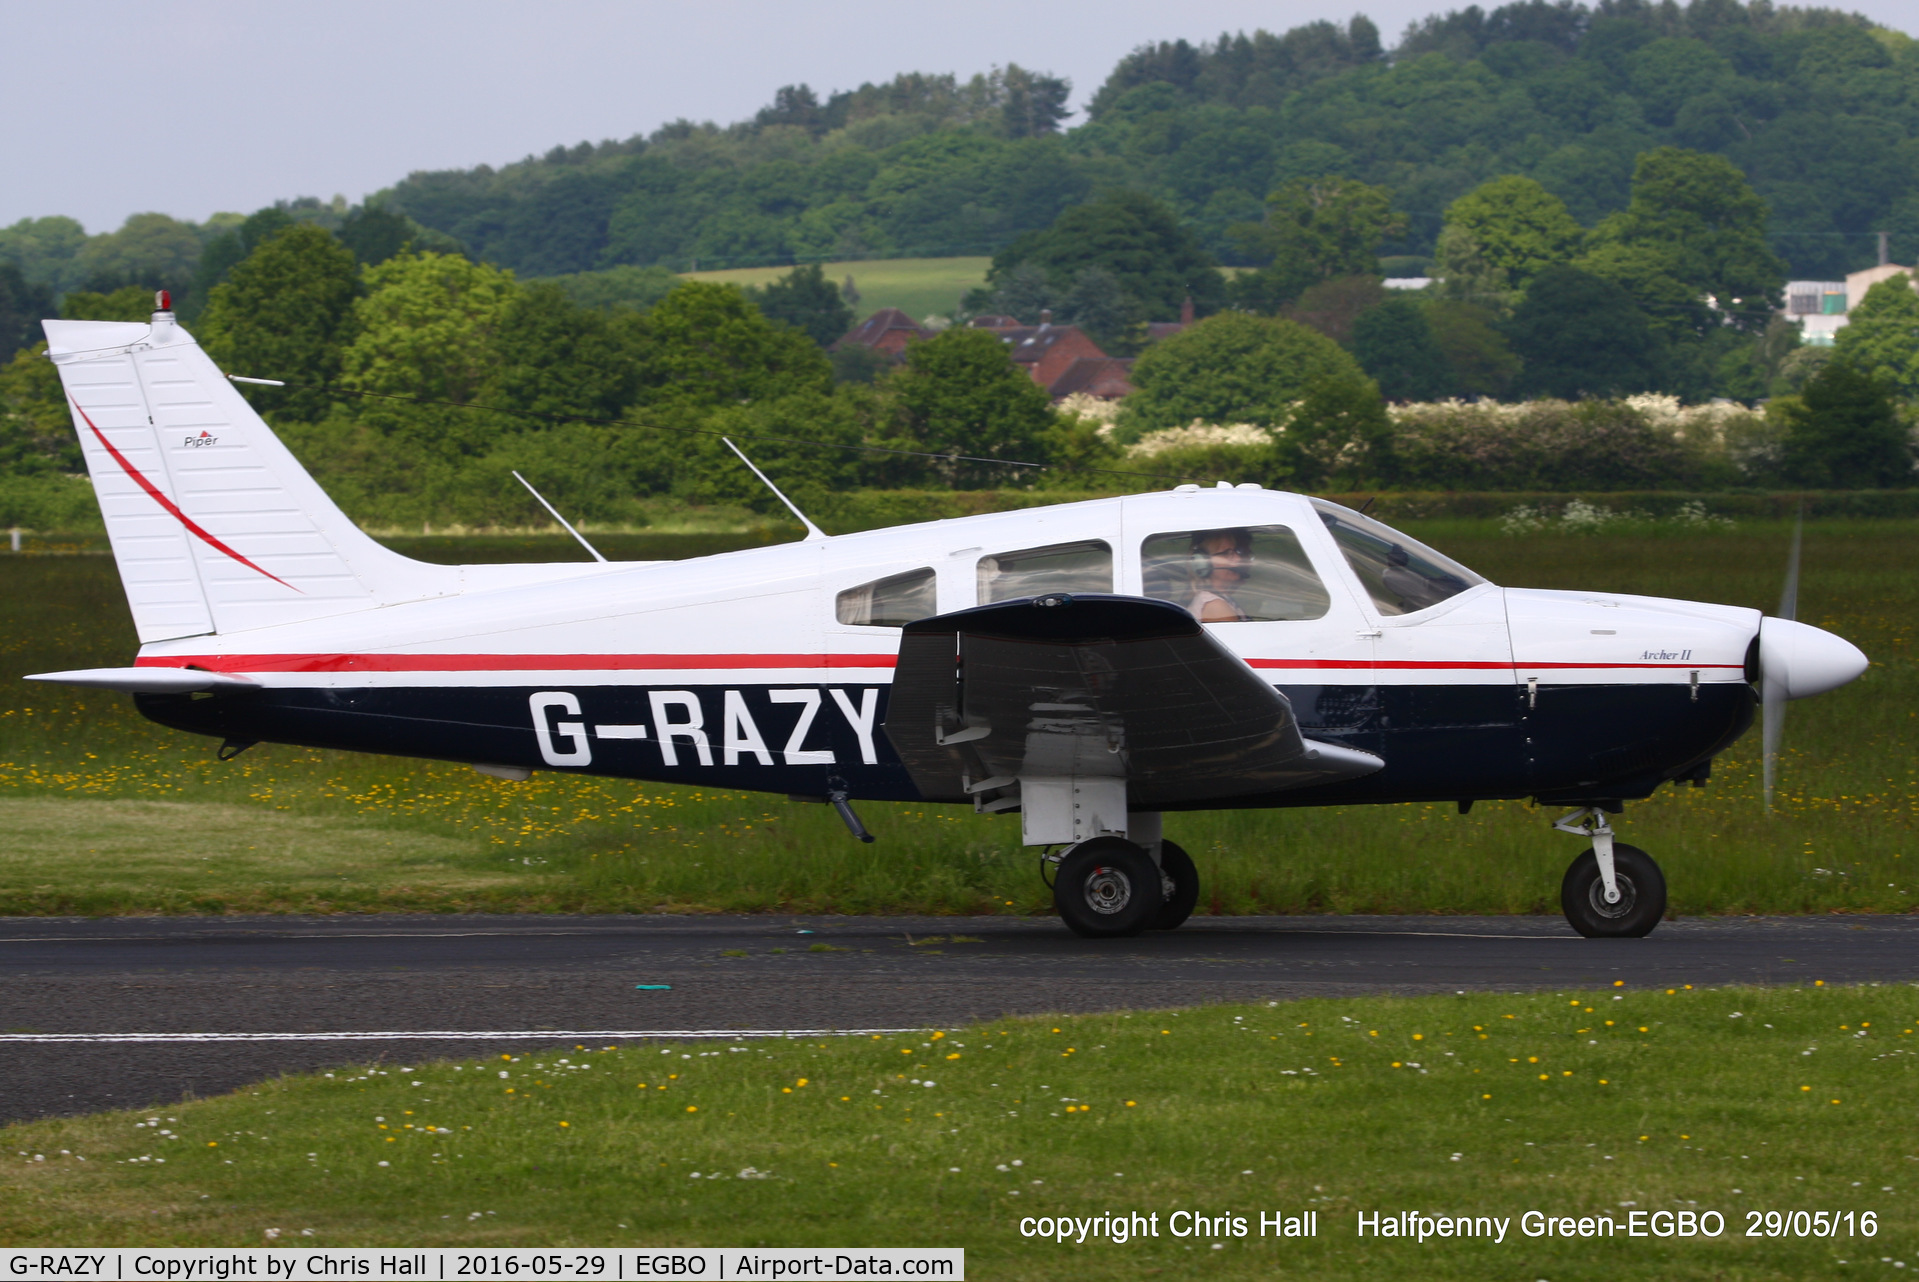 G-RAZY, 1979 Piper PA-28-181 Cherokee Archer II C/N 28-8090102, at Halfpenny Green